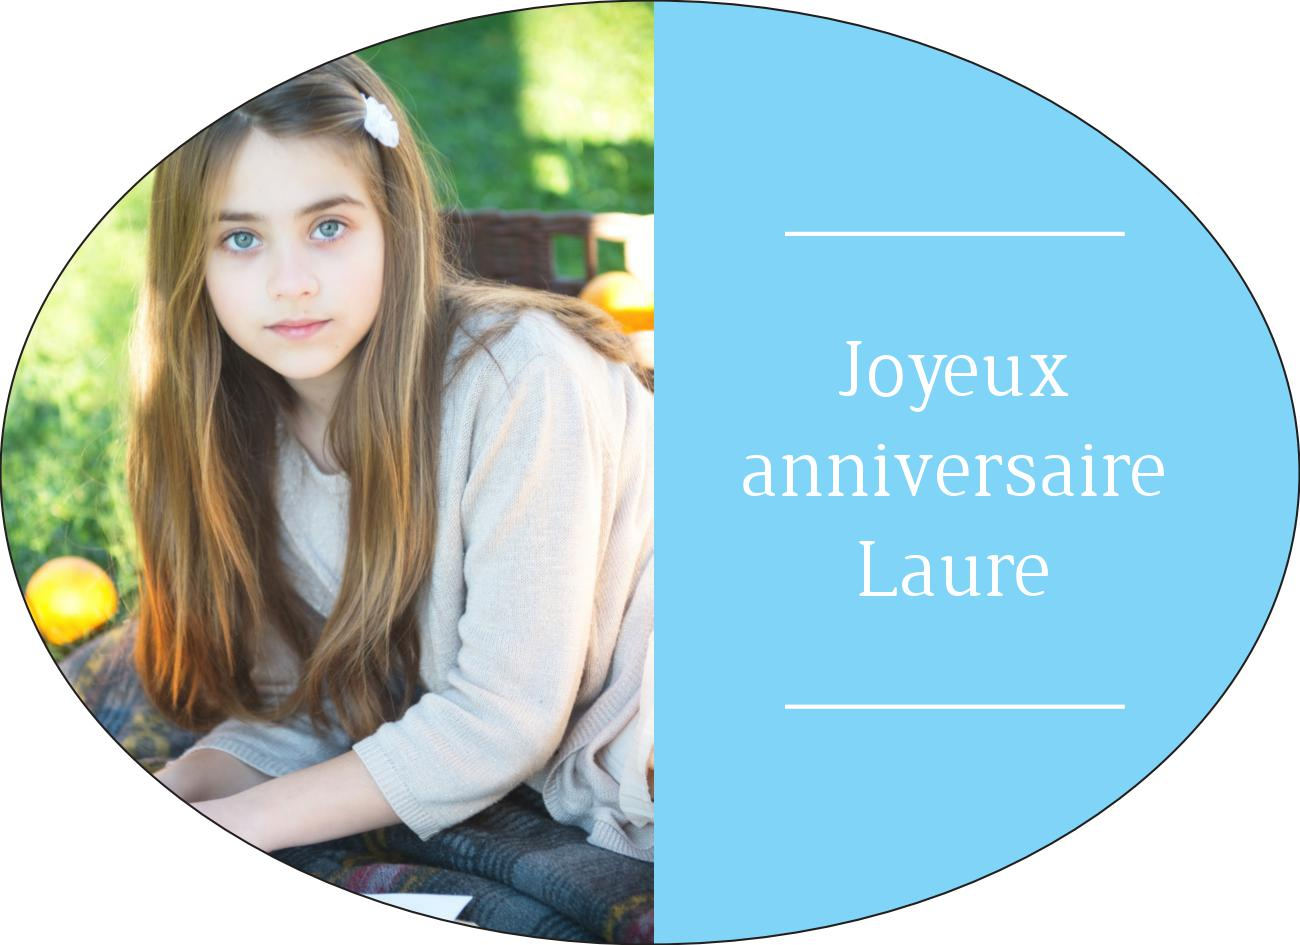 birthday-children-laure_has-image